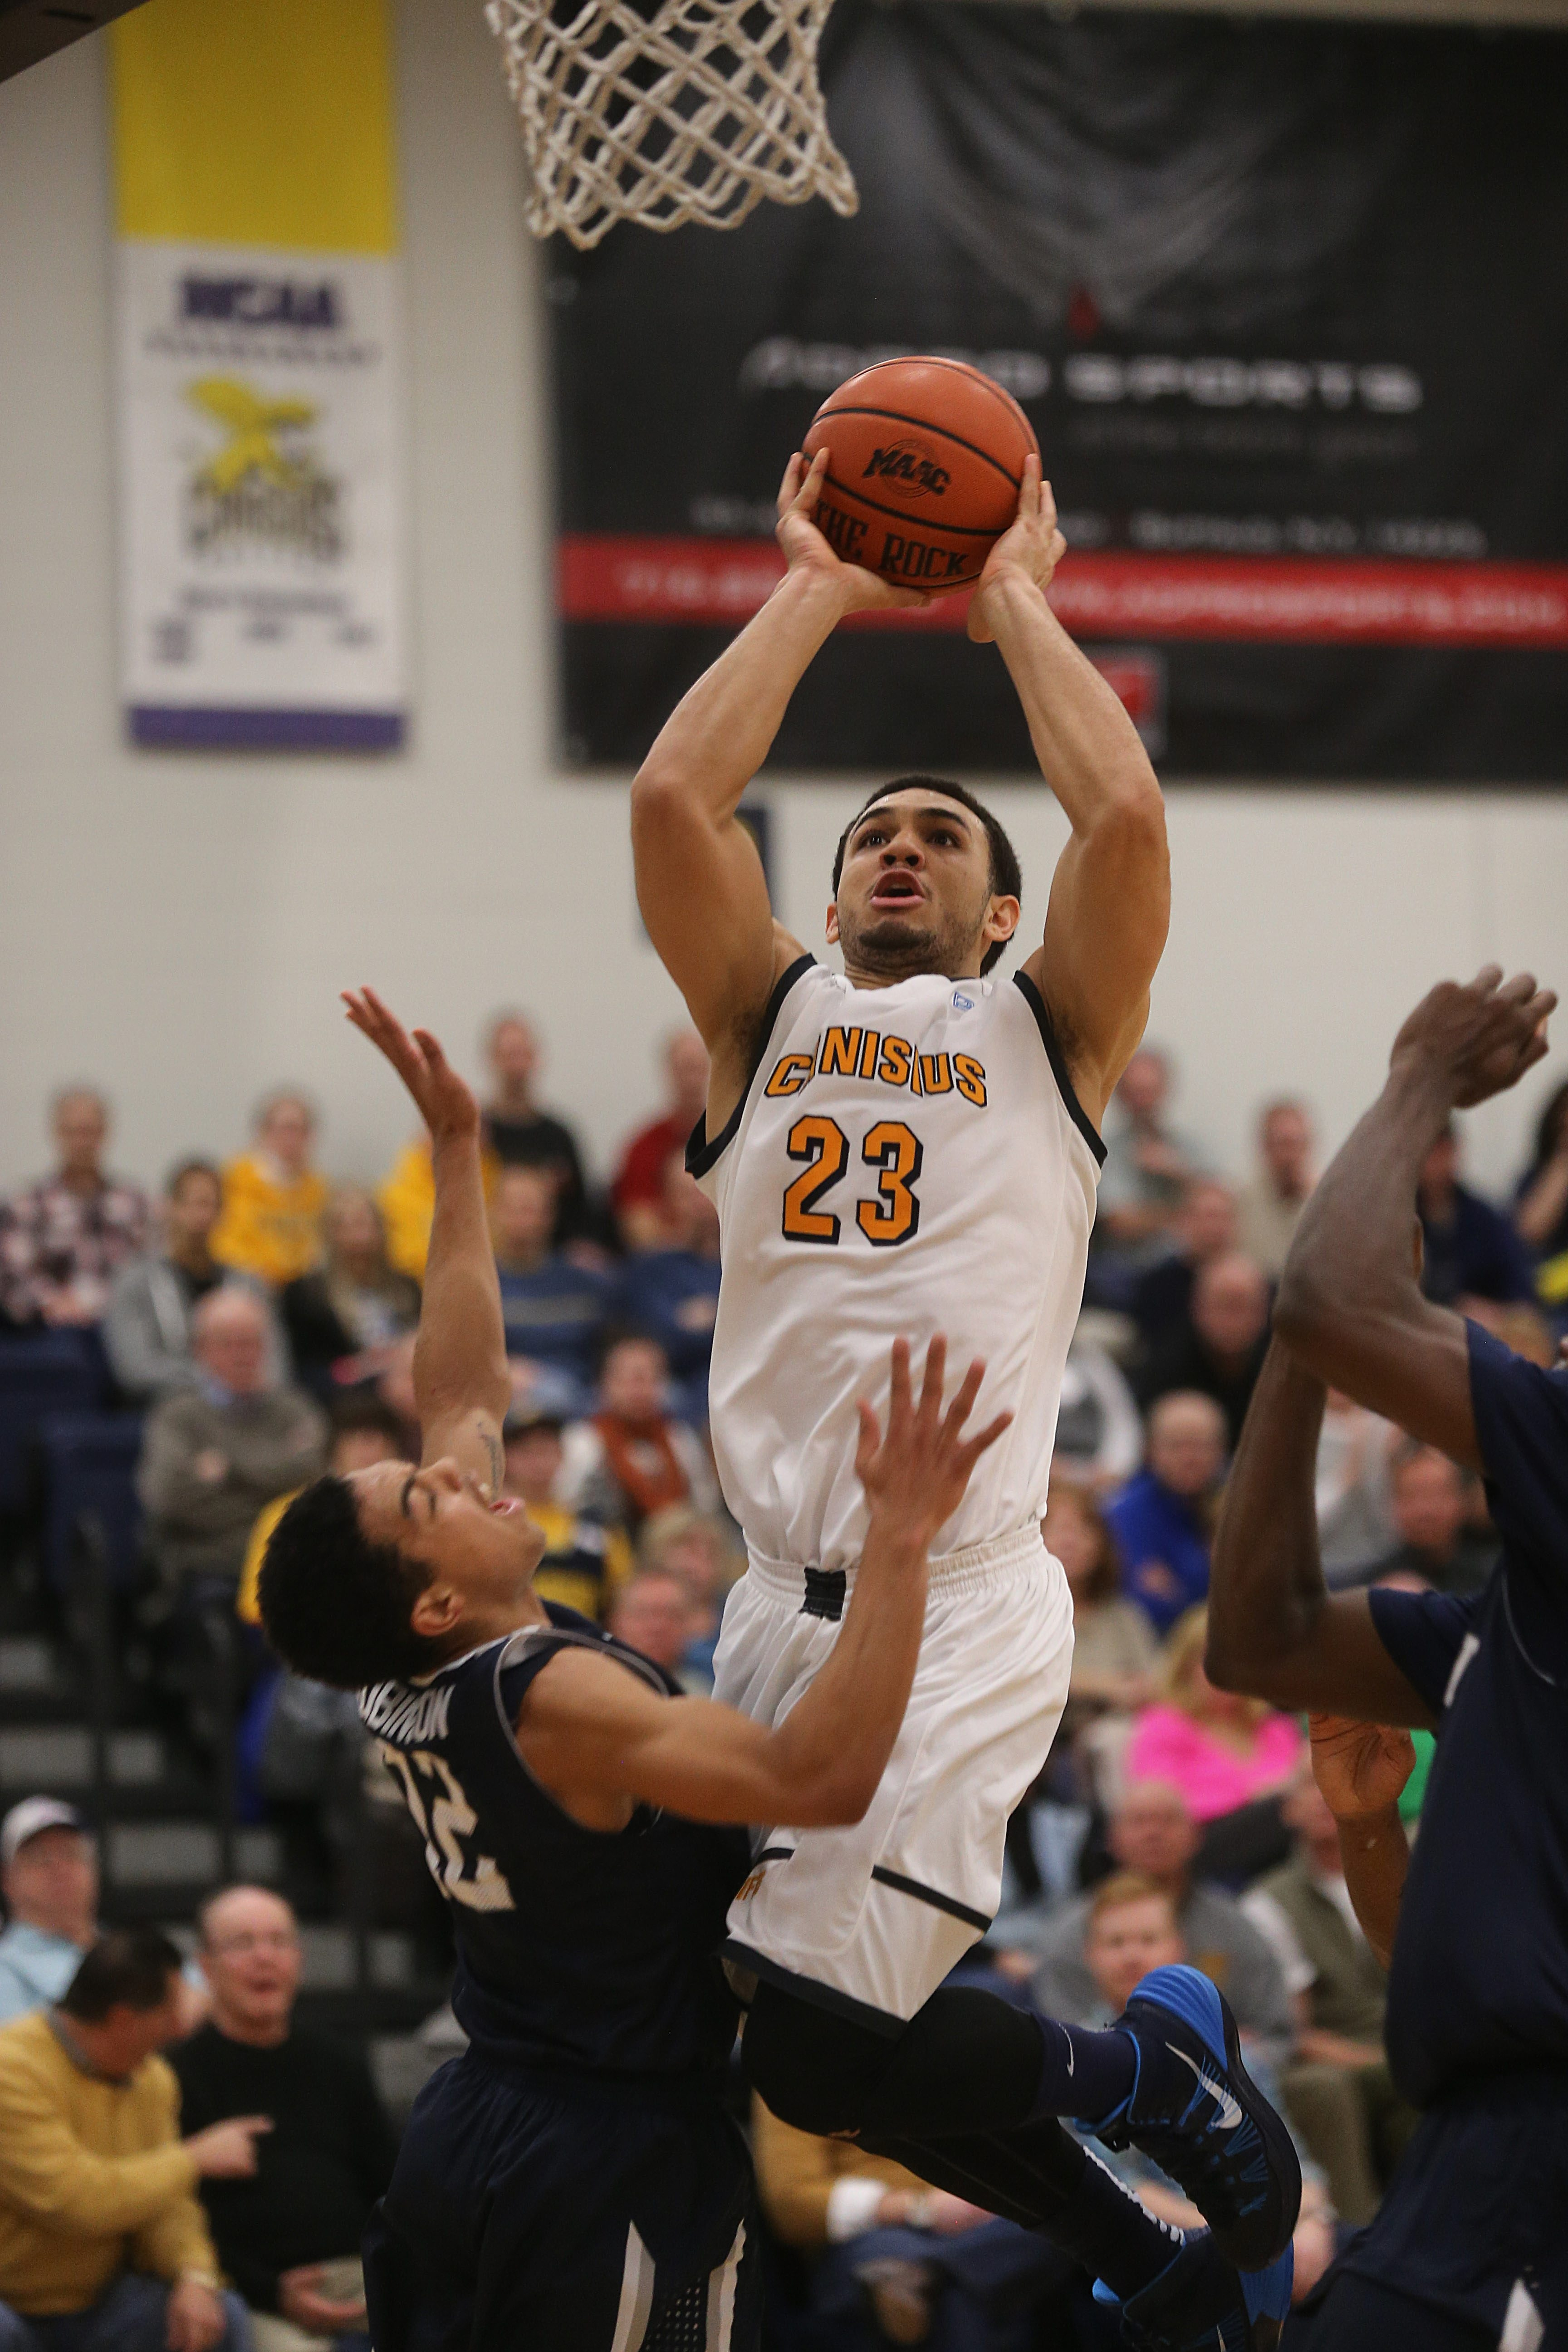 Canisius' Chris Perez drives the lane against Monmouth.